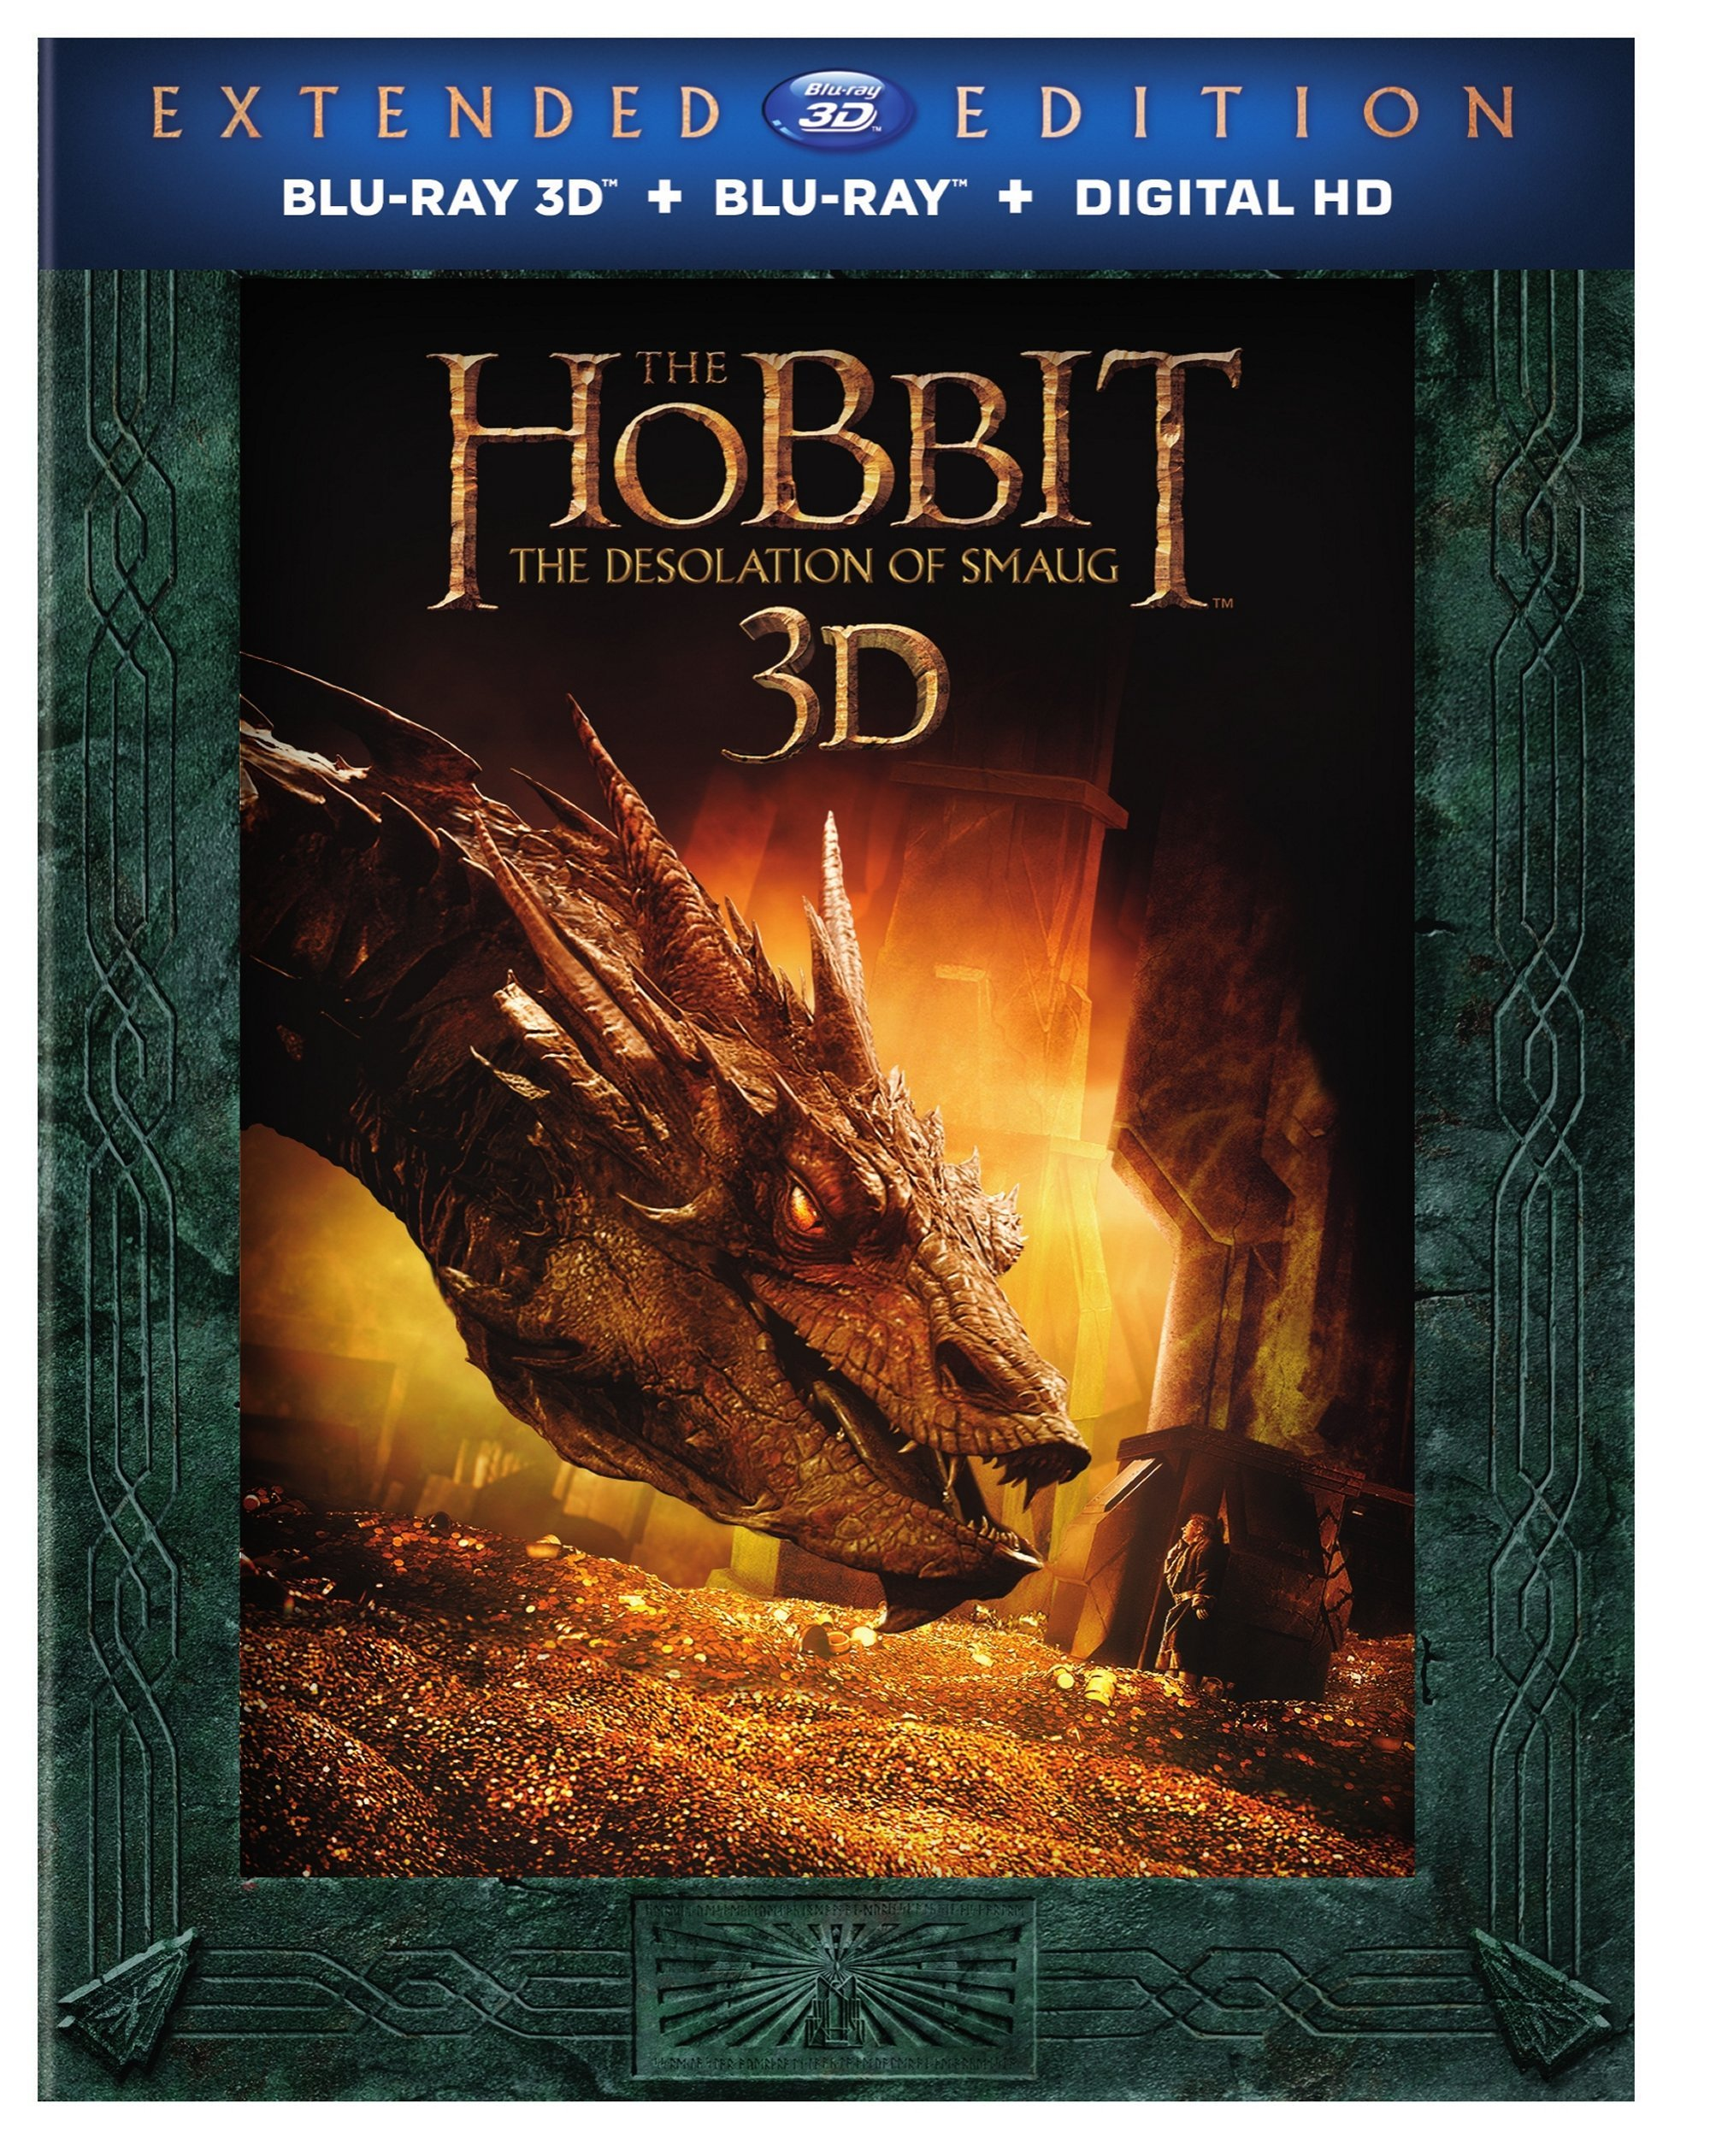 Amazoncom The Hobbit The Desolation of Smaug Bluray